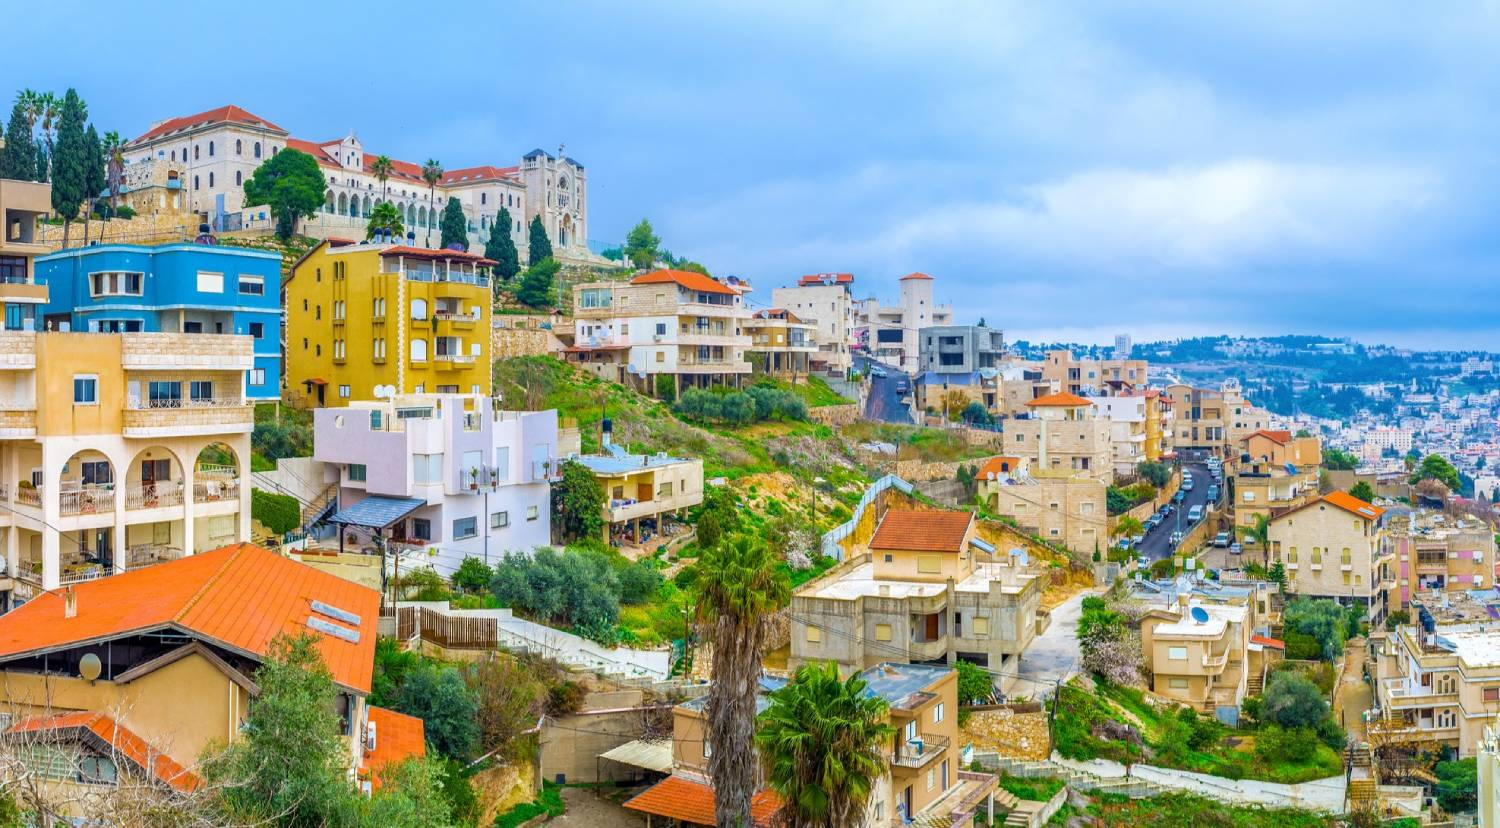 Nazareth - The Best Places To Visit In Israel